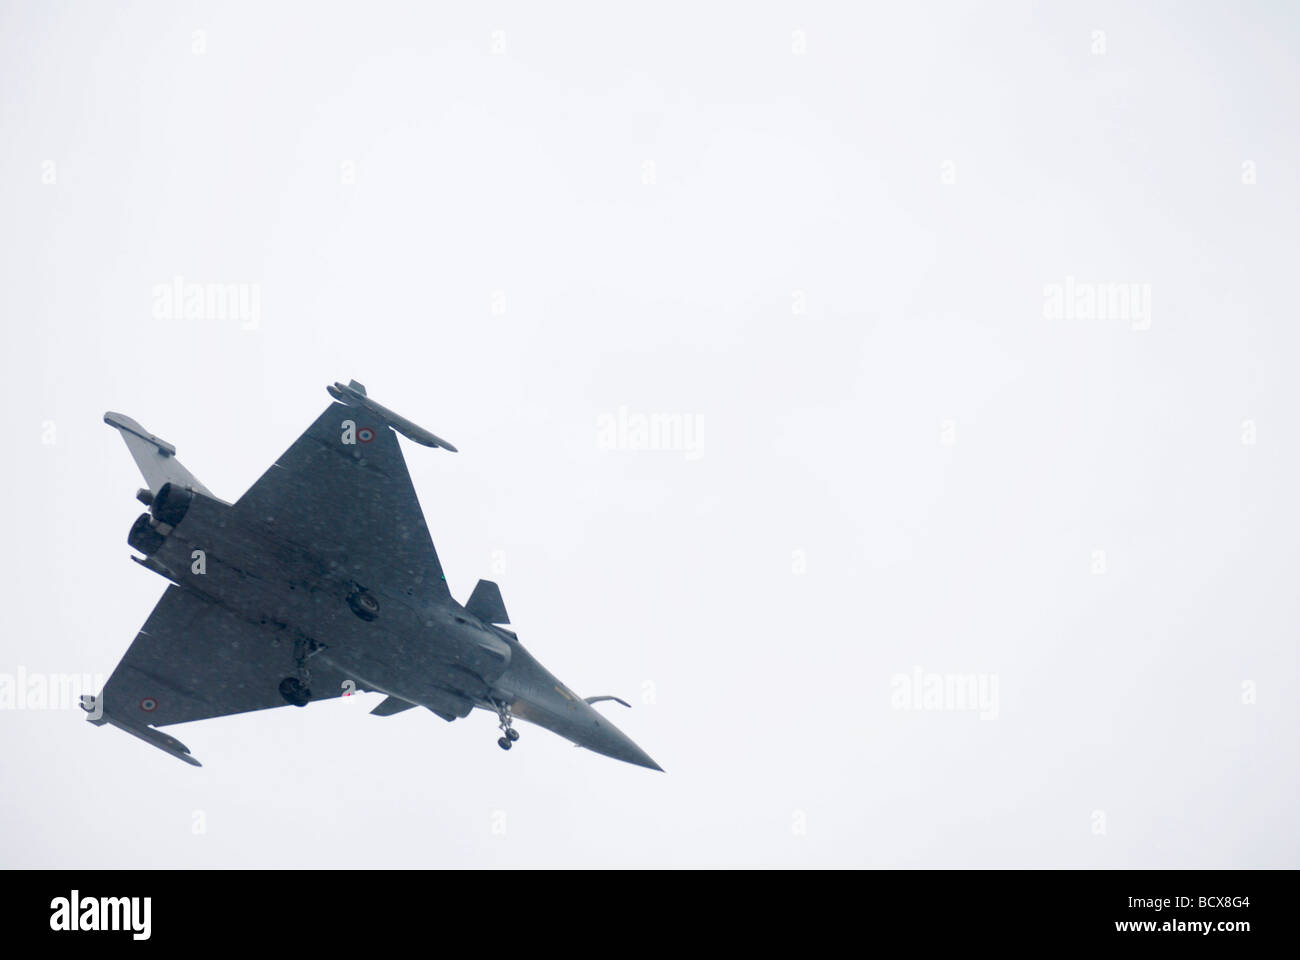 Dassault Mirage 2000 a French multirole fighter jet in flight - Stock Image